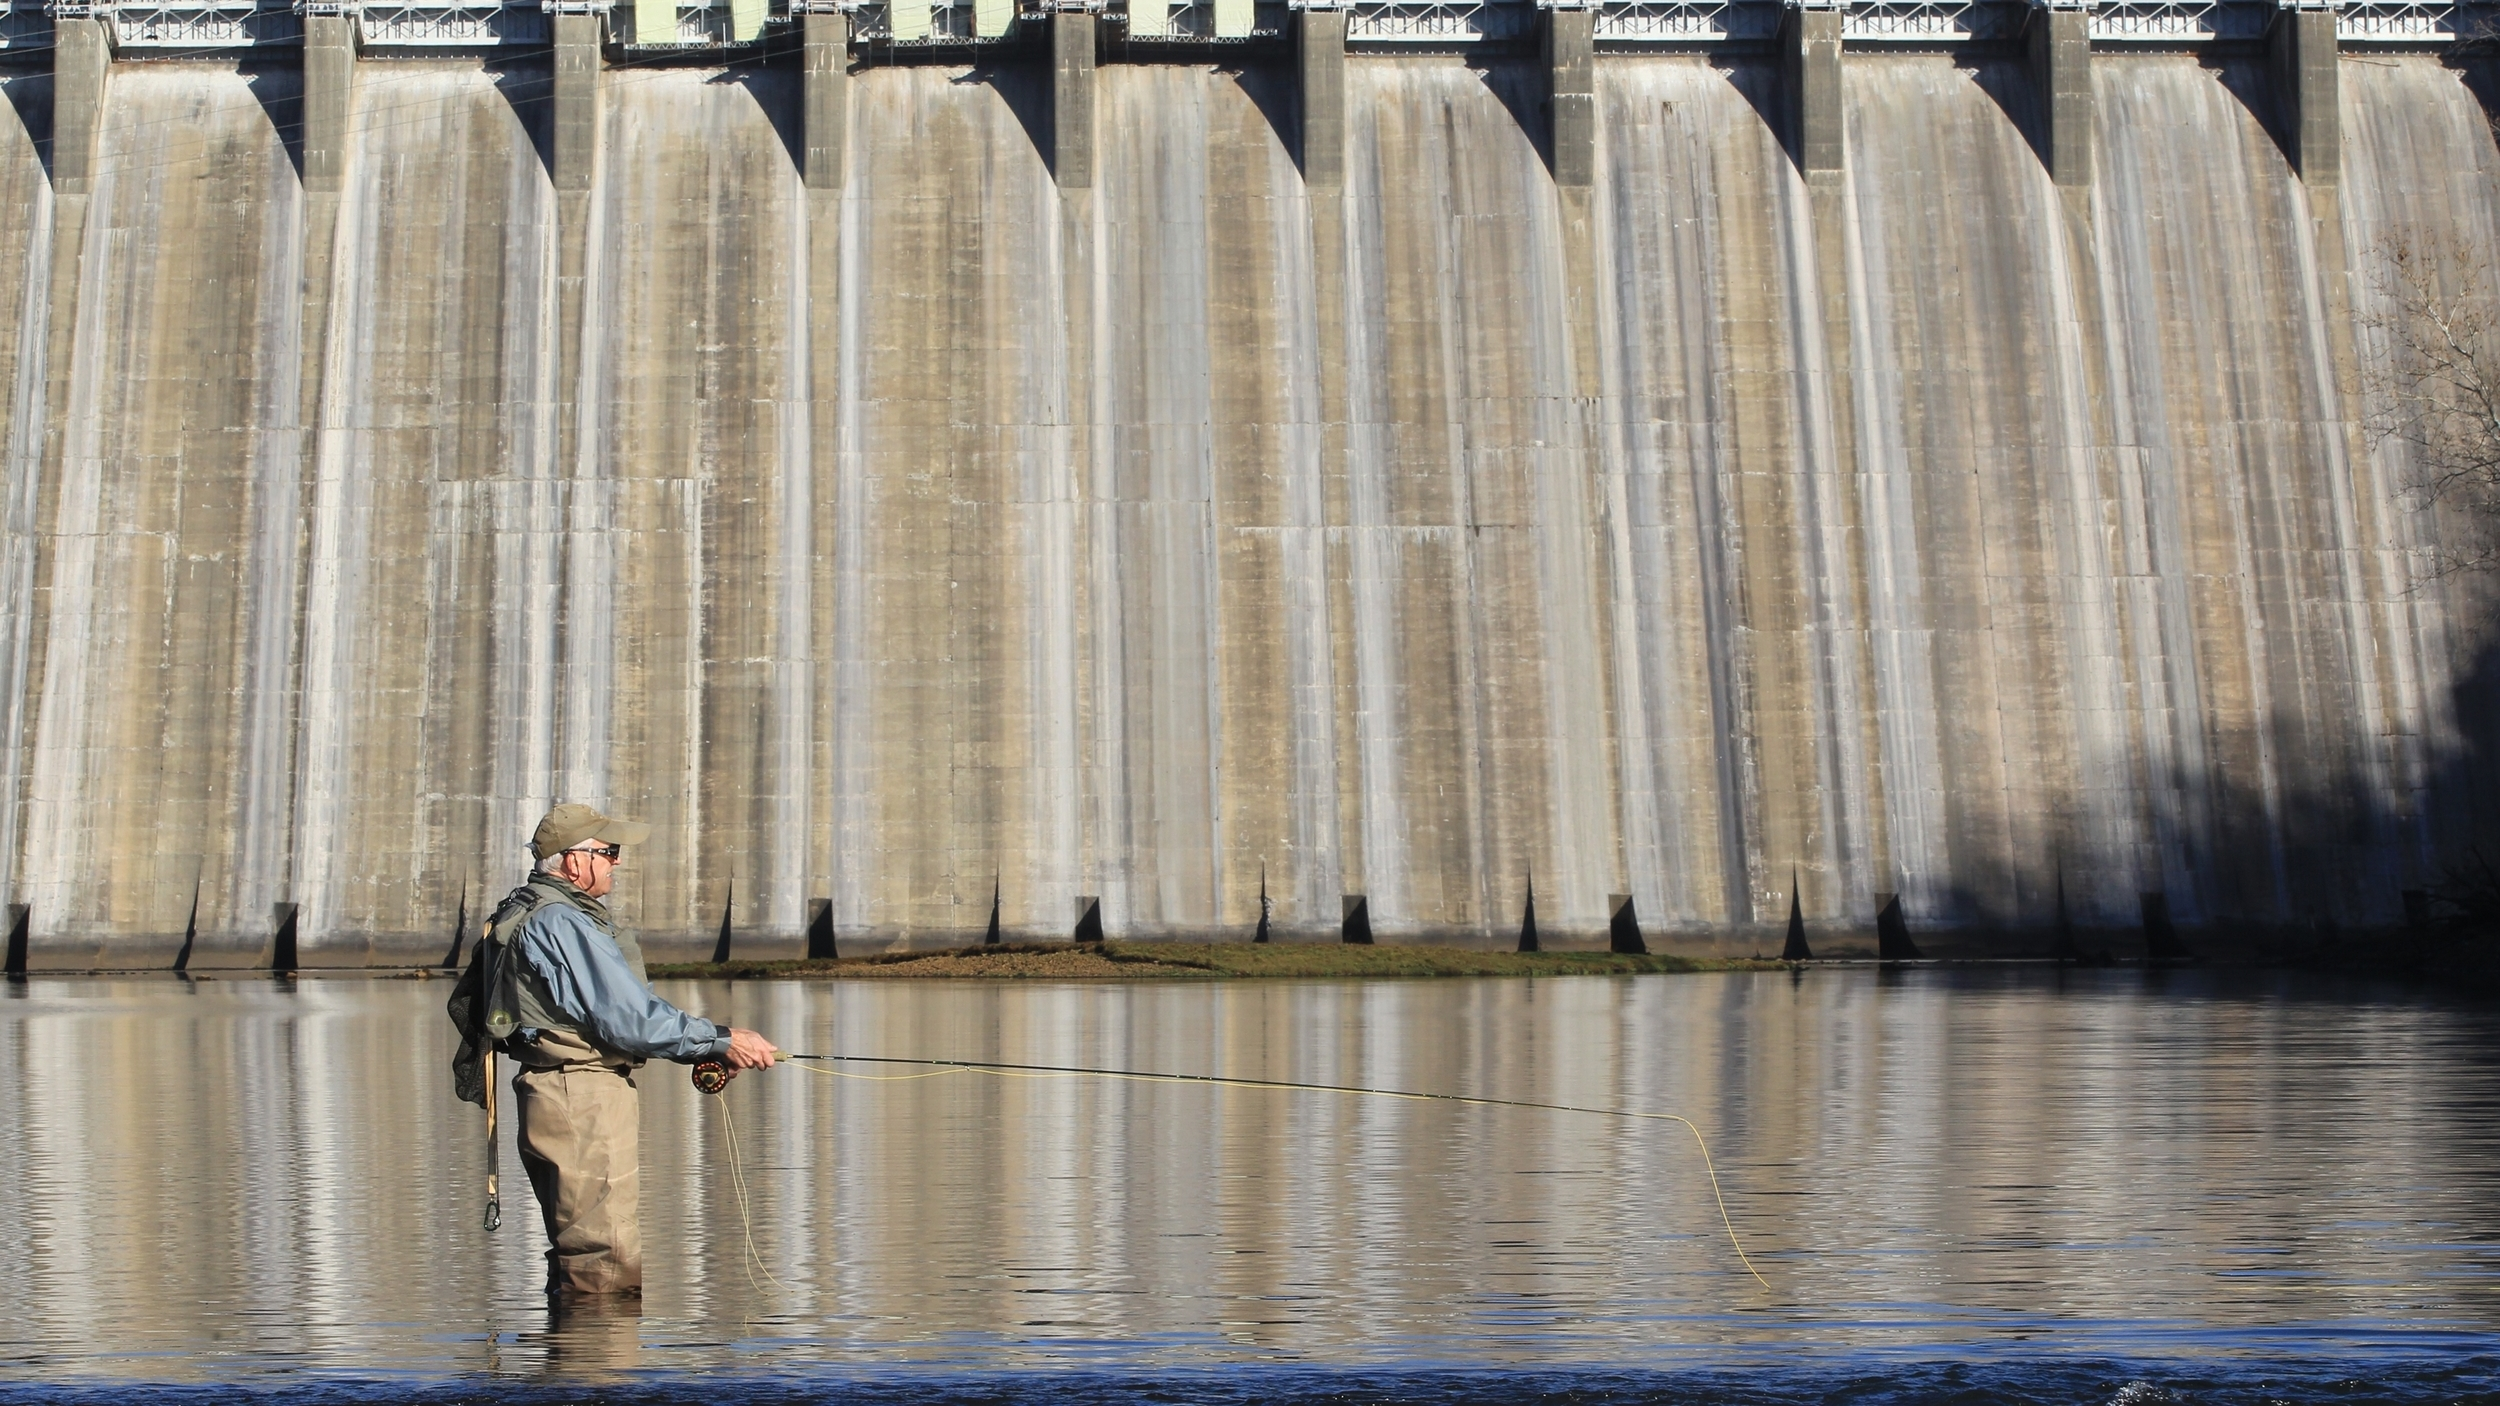 The best walk-in access points on Norfork River are just below the dam.